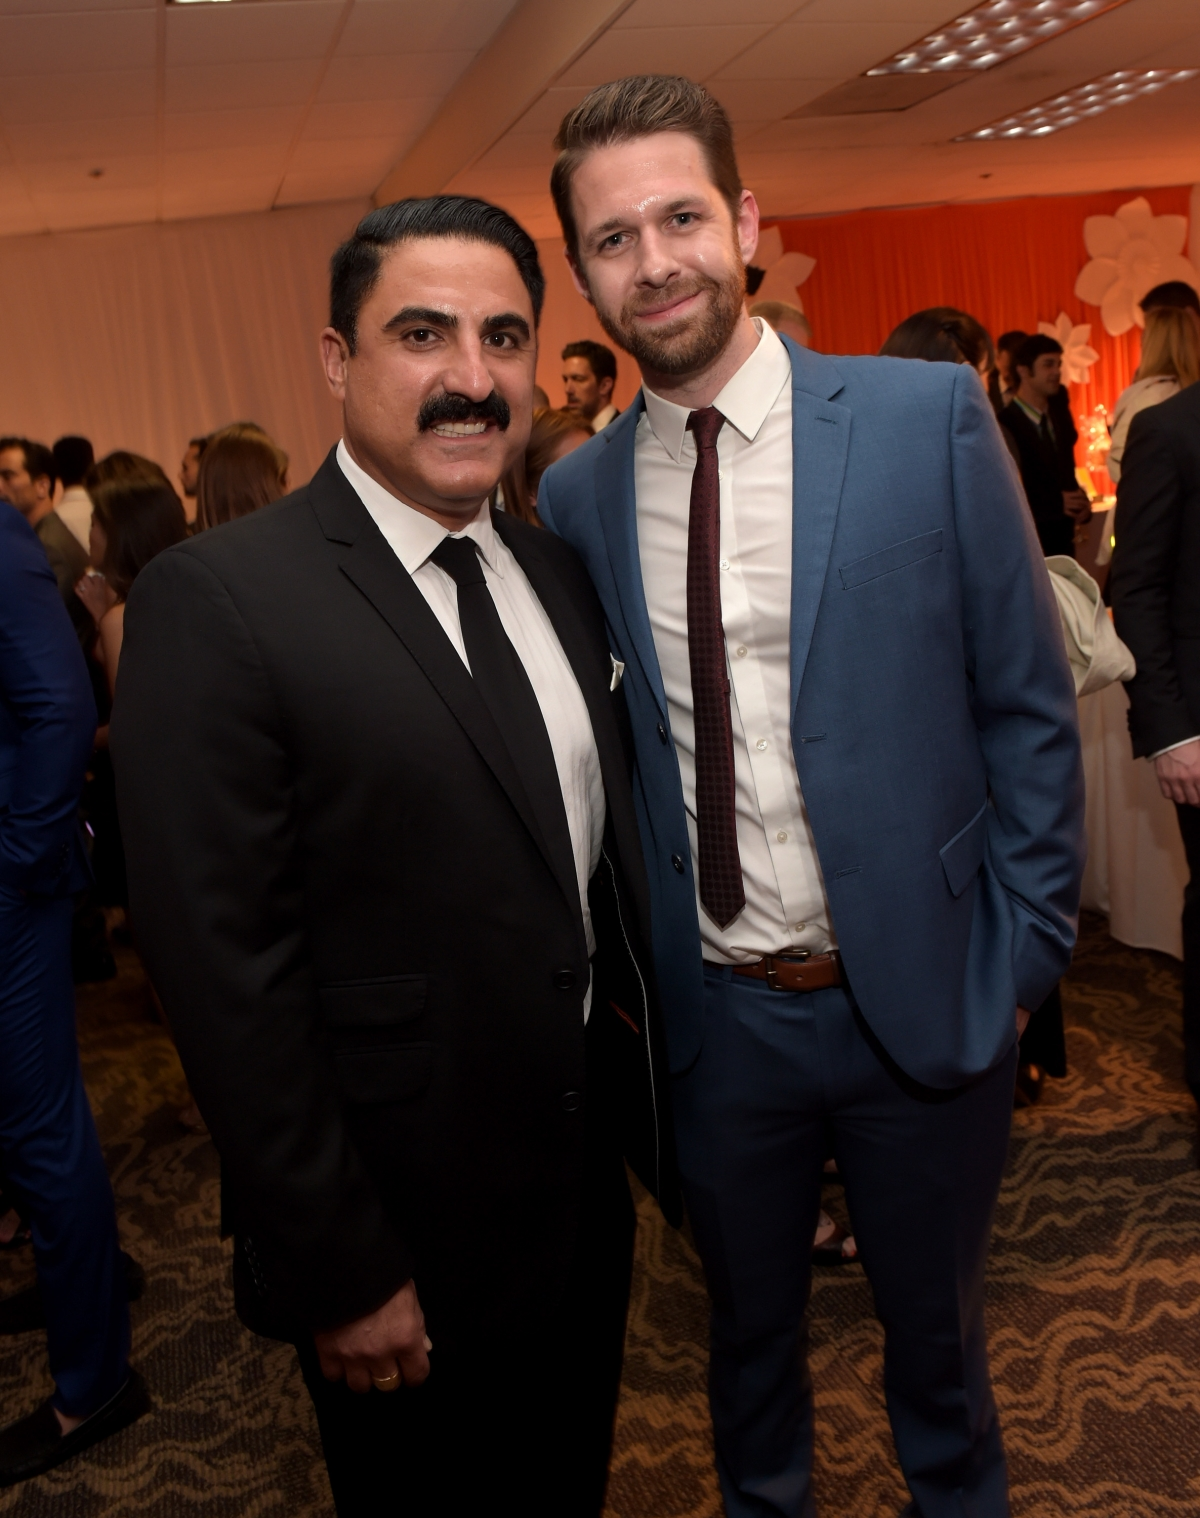 who is reza from shahs of sunset dating Reza farahan is officially a married man a source exclusively confirms to e news that the shahs of sunset star surprised fiancé adam neely with a wedding this past weekend during a trip to palm springs, calif.